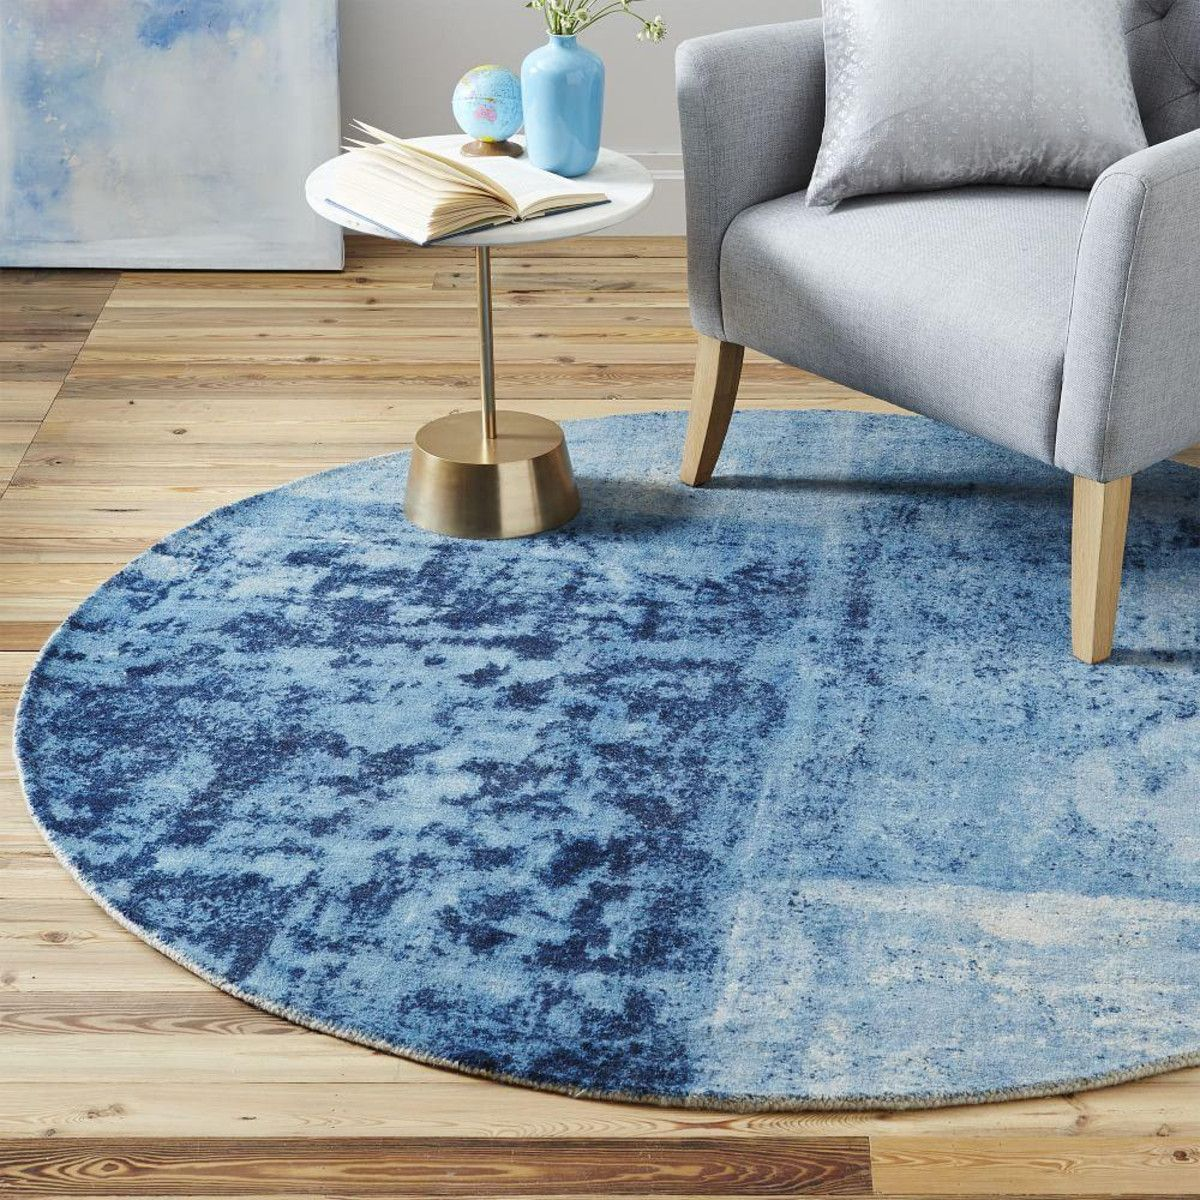 Distressed Rococo Wool Rug Round